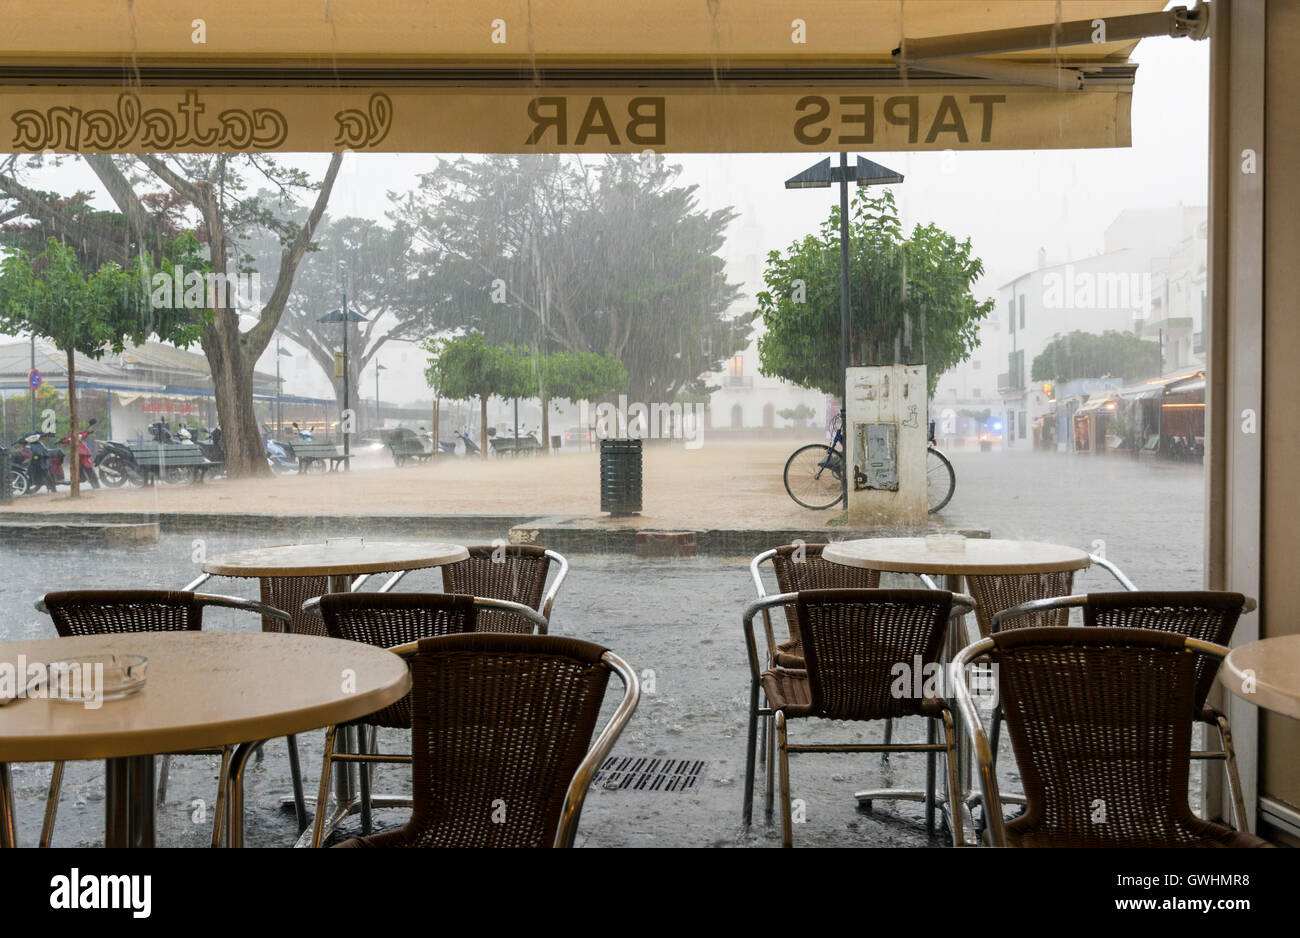 Heavy rainfall viewed through the open front of a bar on the Costa Brava, Spain - Stock Image